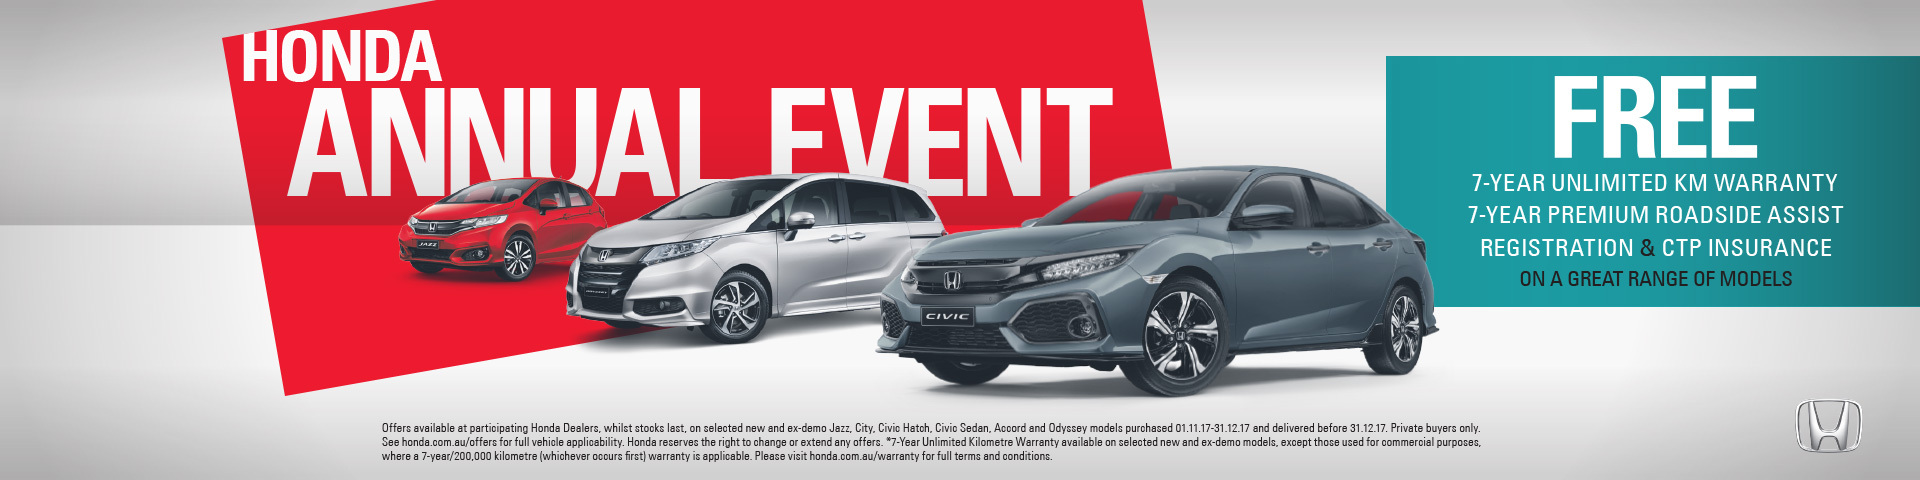 Honda - National Offer - Free 7yr Warranty & 7 Yr Roadside Assist